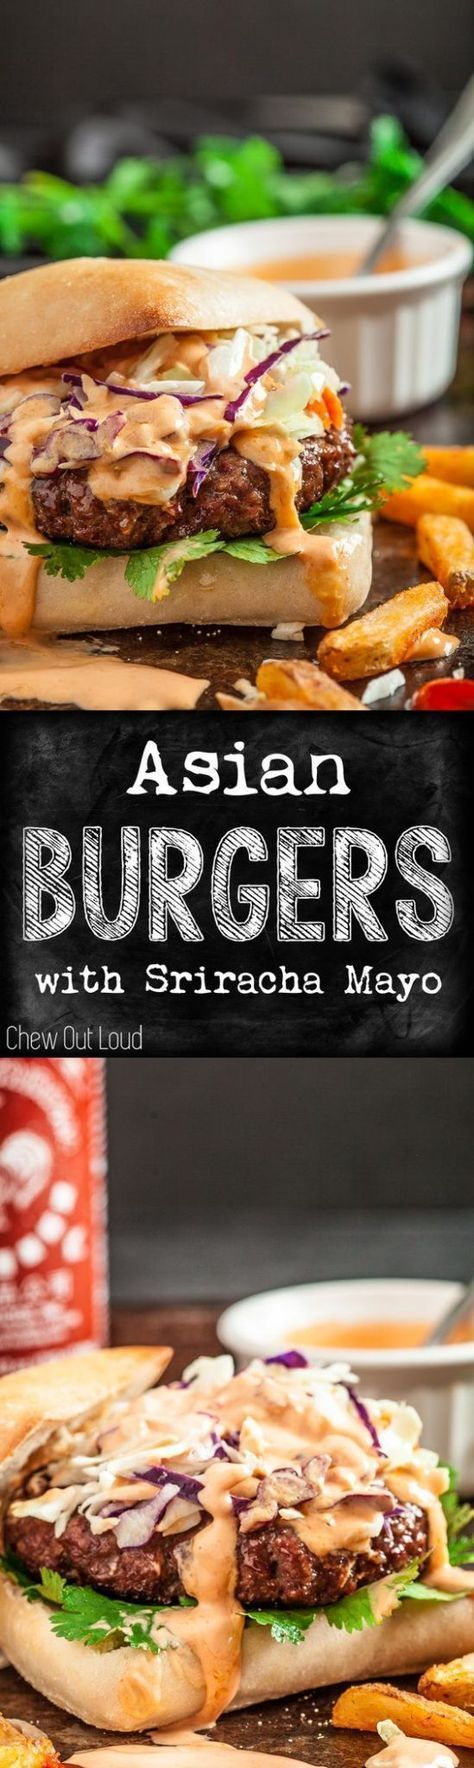 Hamburger Recipes - The BEST Ground Beef Asian Burgers ready for the grill with Sriracha Mayo - Recipe via Chew Out Loud #burgers #gourmetburgers #burgerrecipes #cookouts #grilling #barbecue #hamburgers #fathersday #fathersdayfood #bbq #partyfood #tailgat